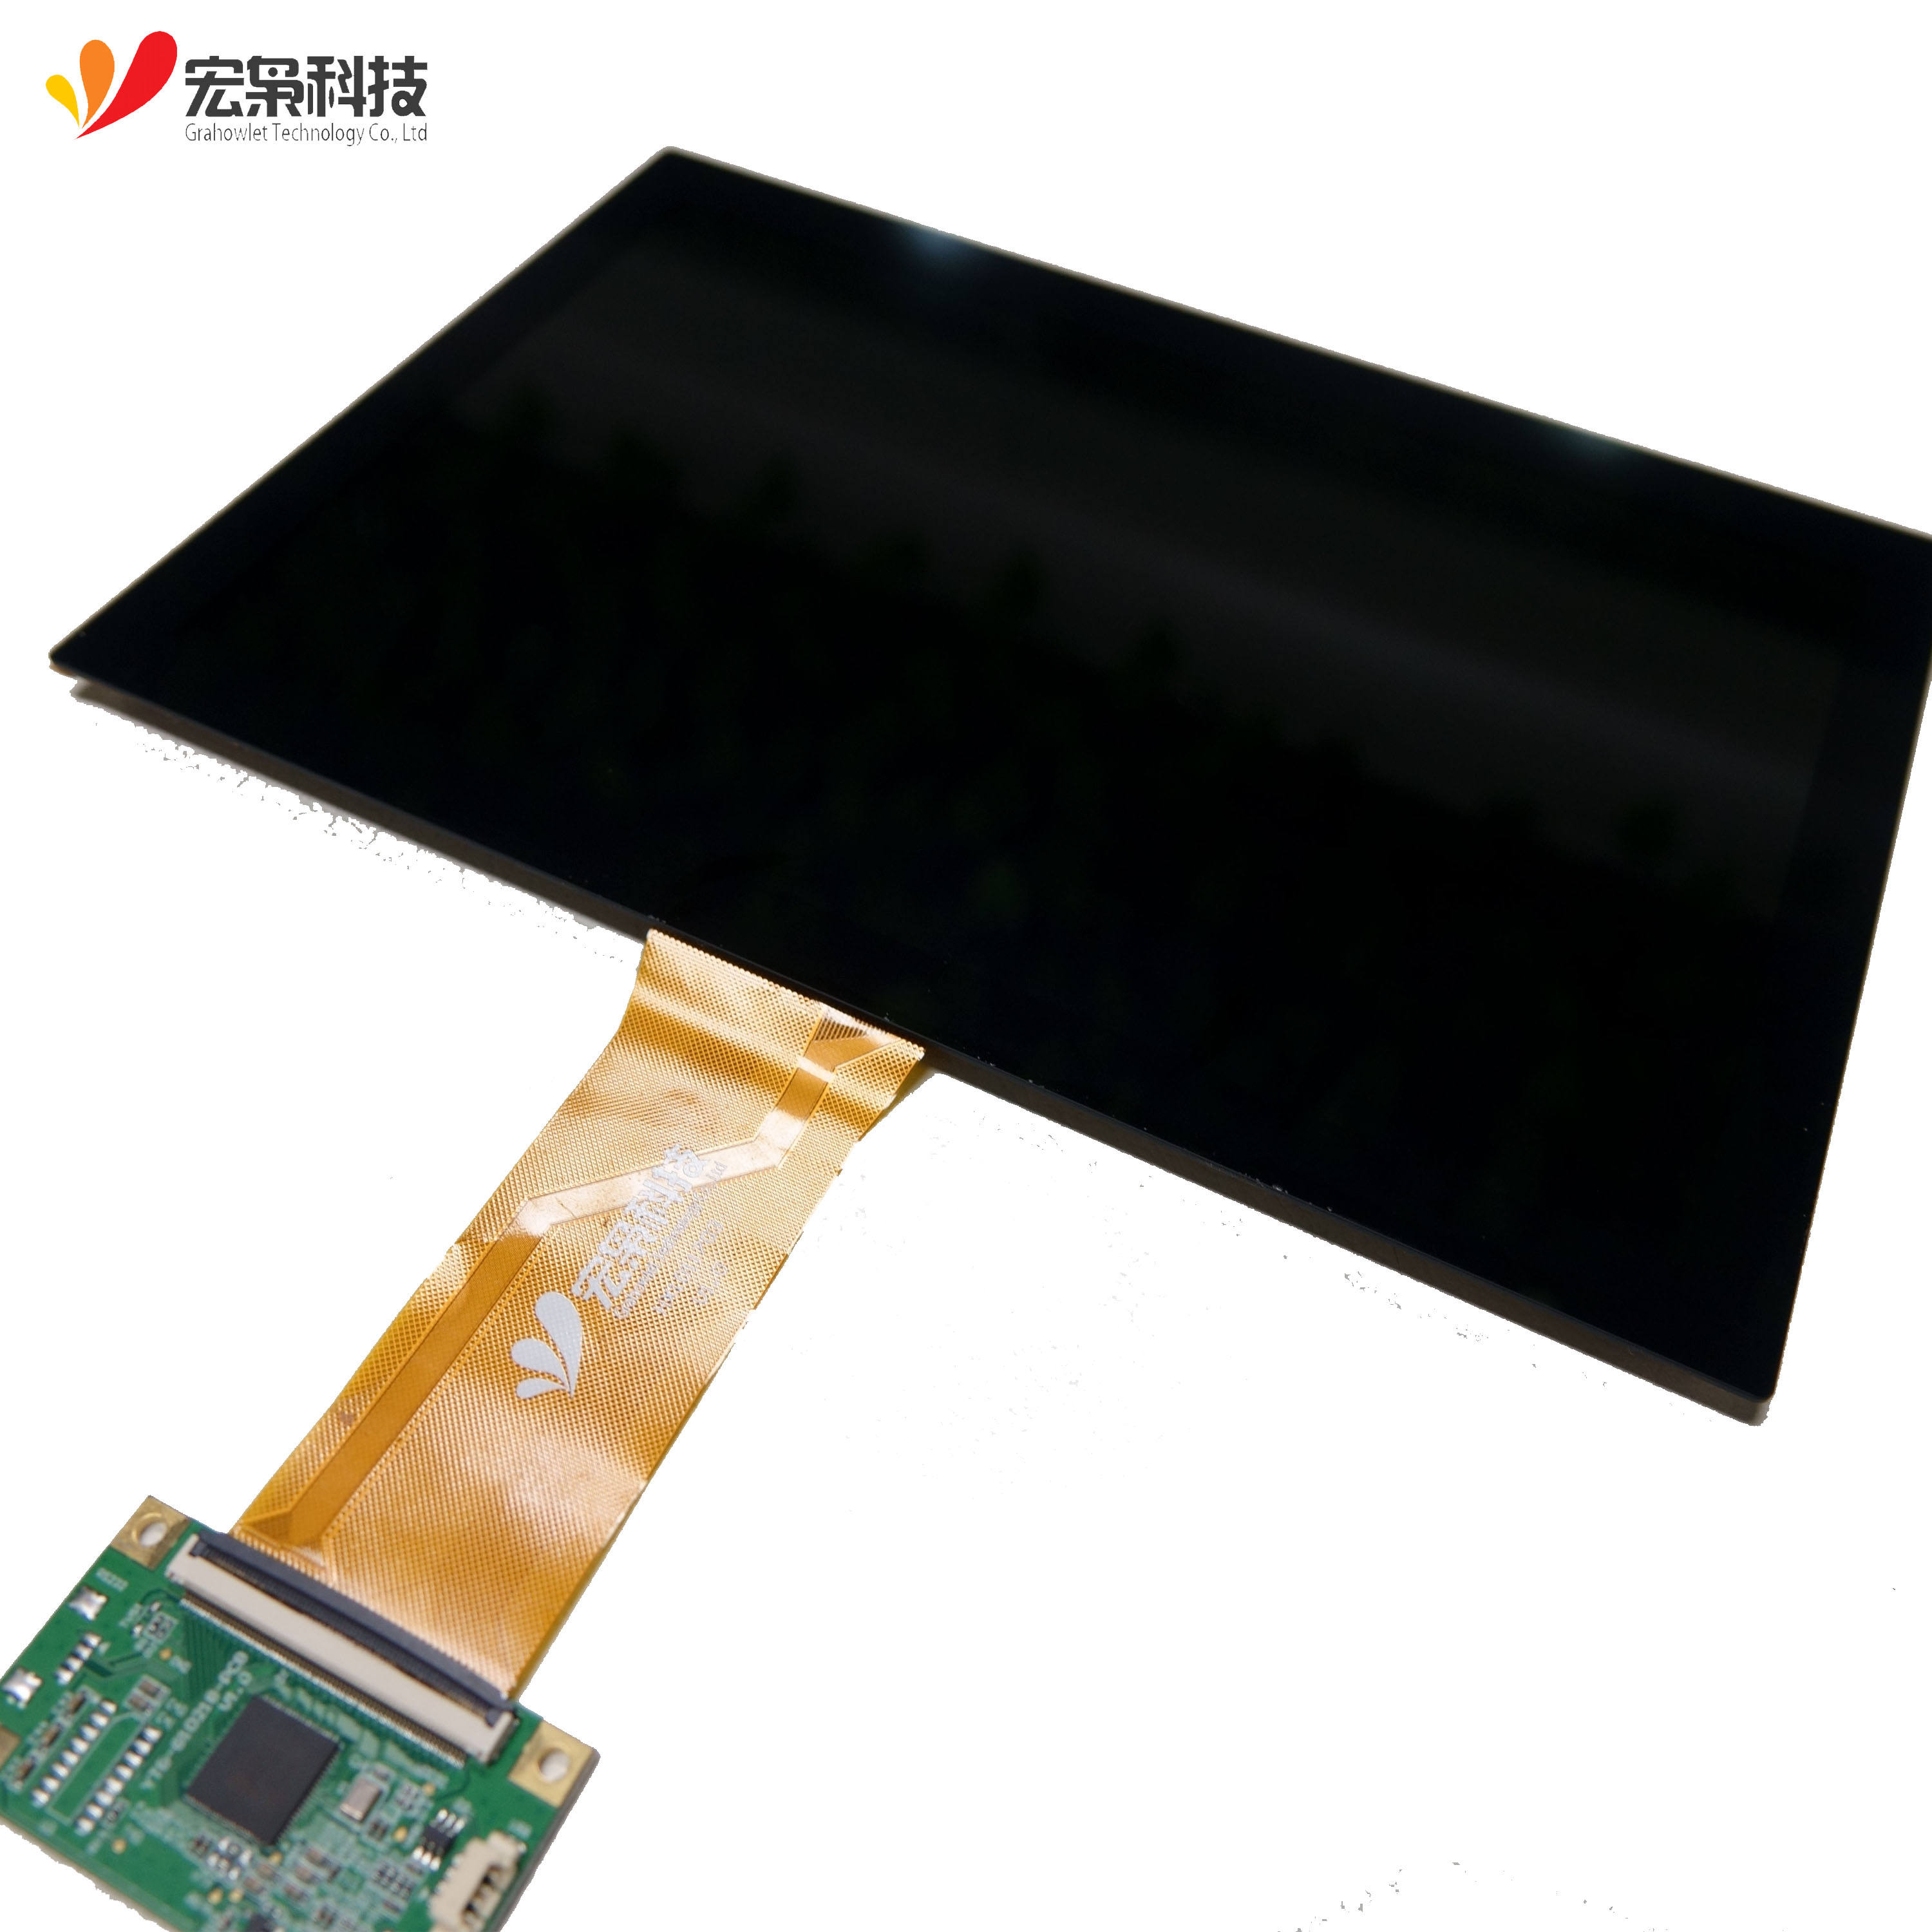 USB 101, 11.6, 12.1, 13.3, 156 inch capacitieve 1280x800 multi touch screen raspberry pi IPS lcd panel